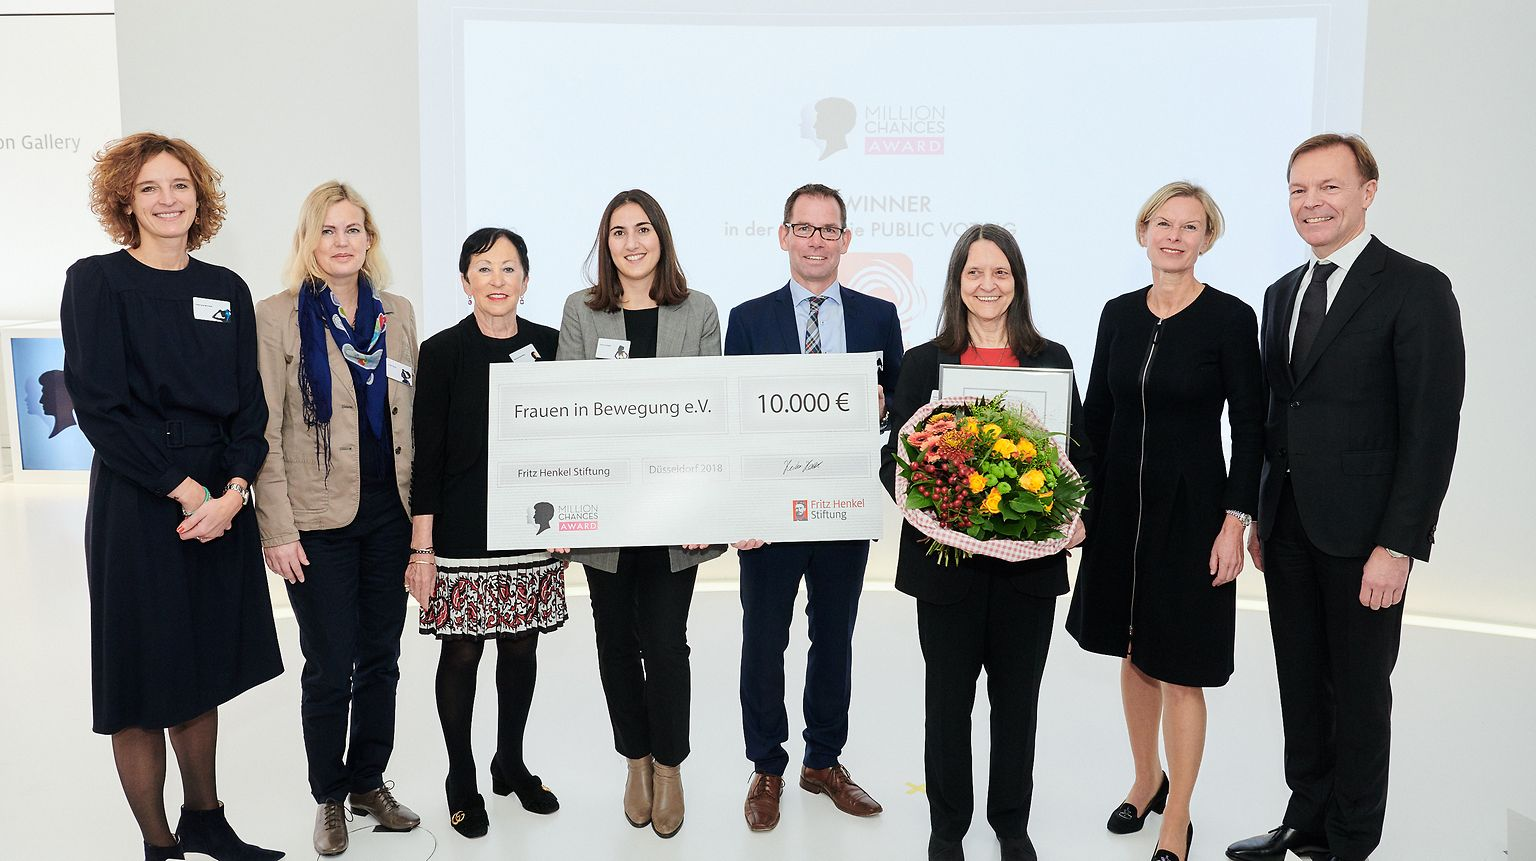 Schwarzkopf Million Chances Award 2018